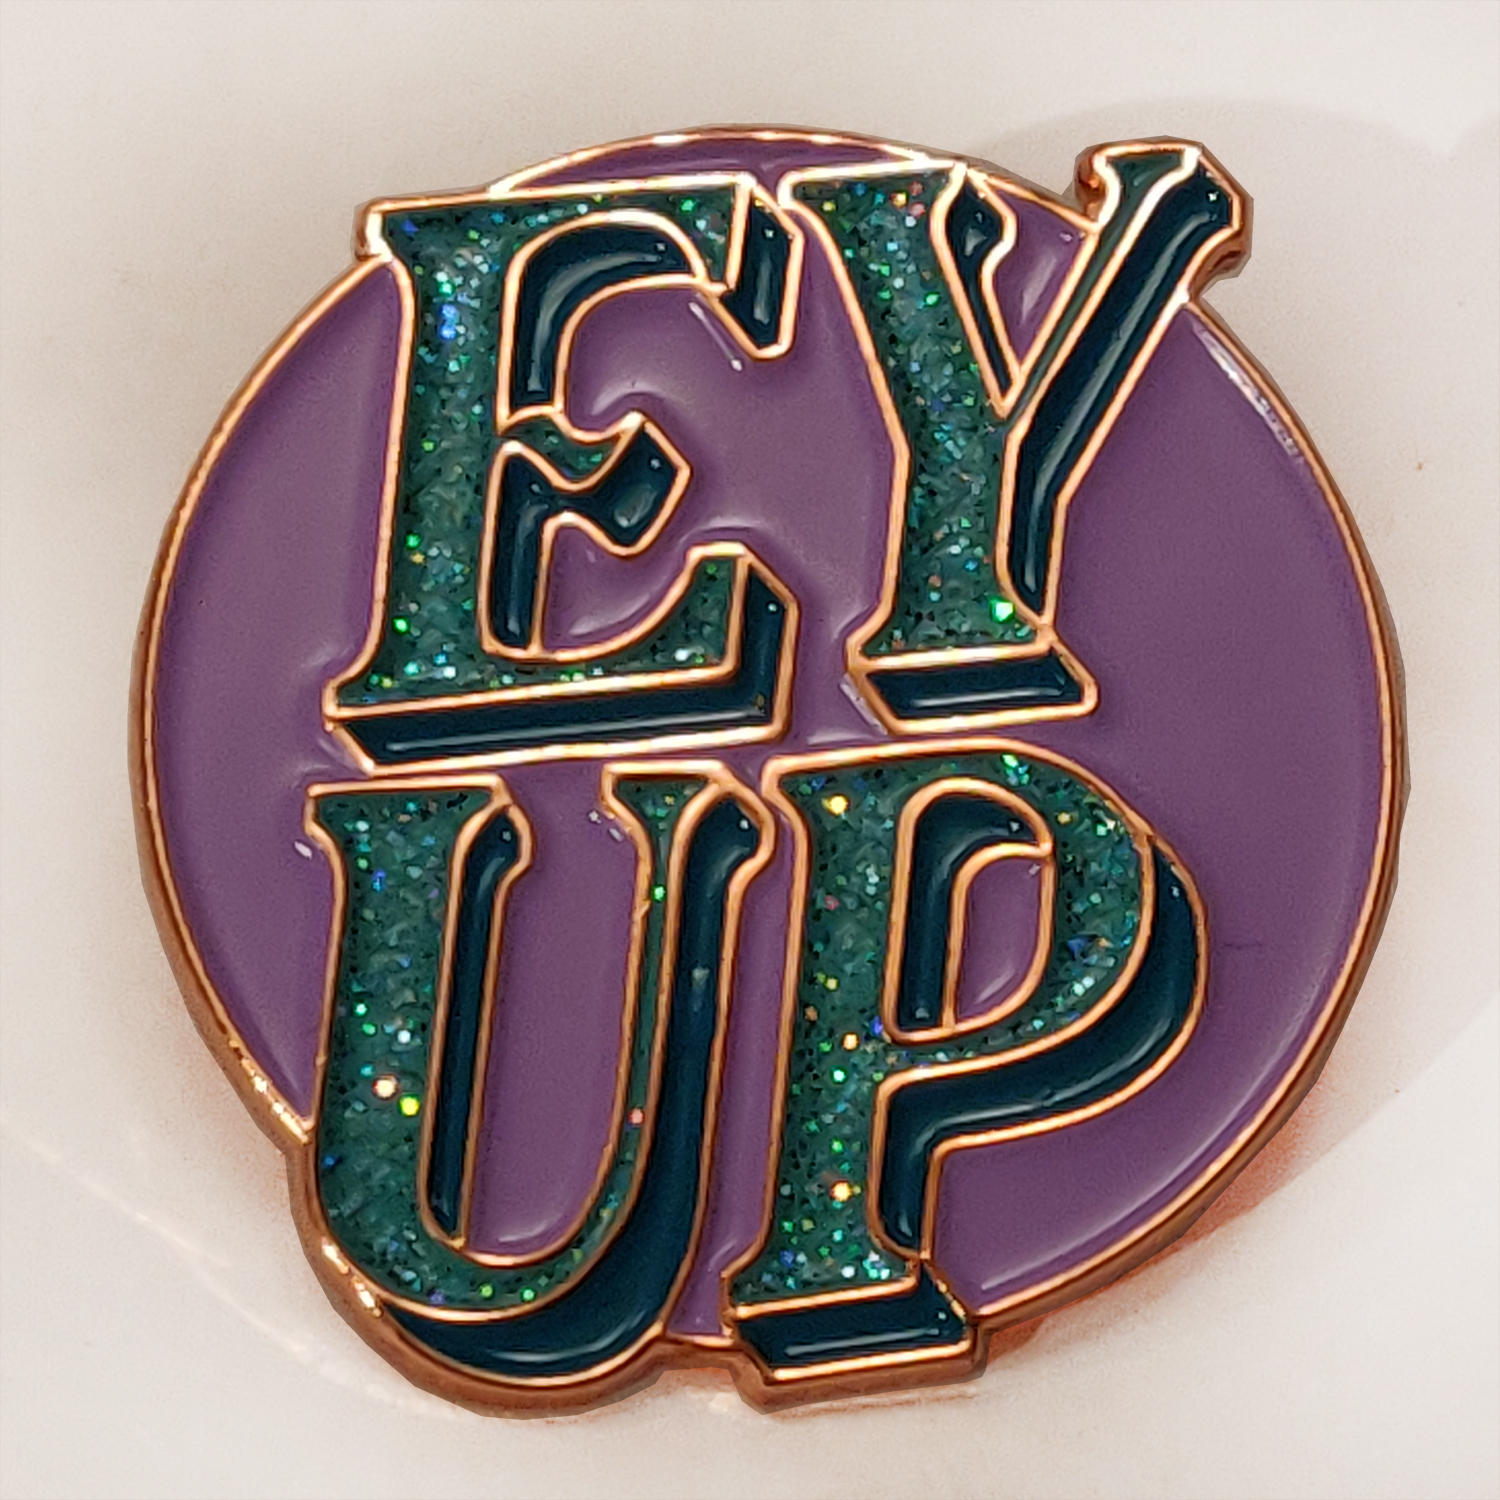 'EY UP' Enamel pin- Turquoise/lilac SOLD OUT